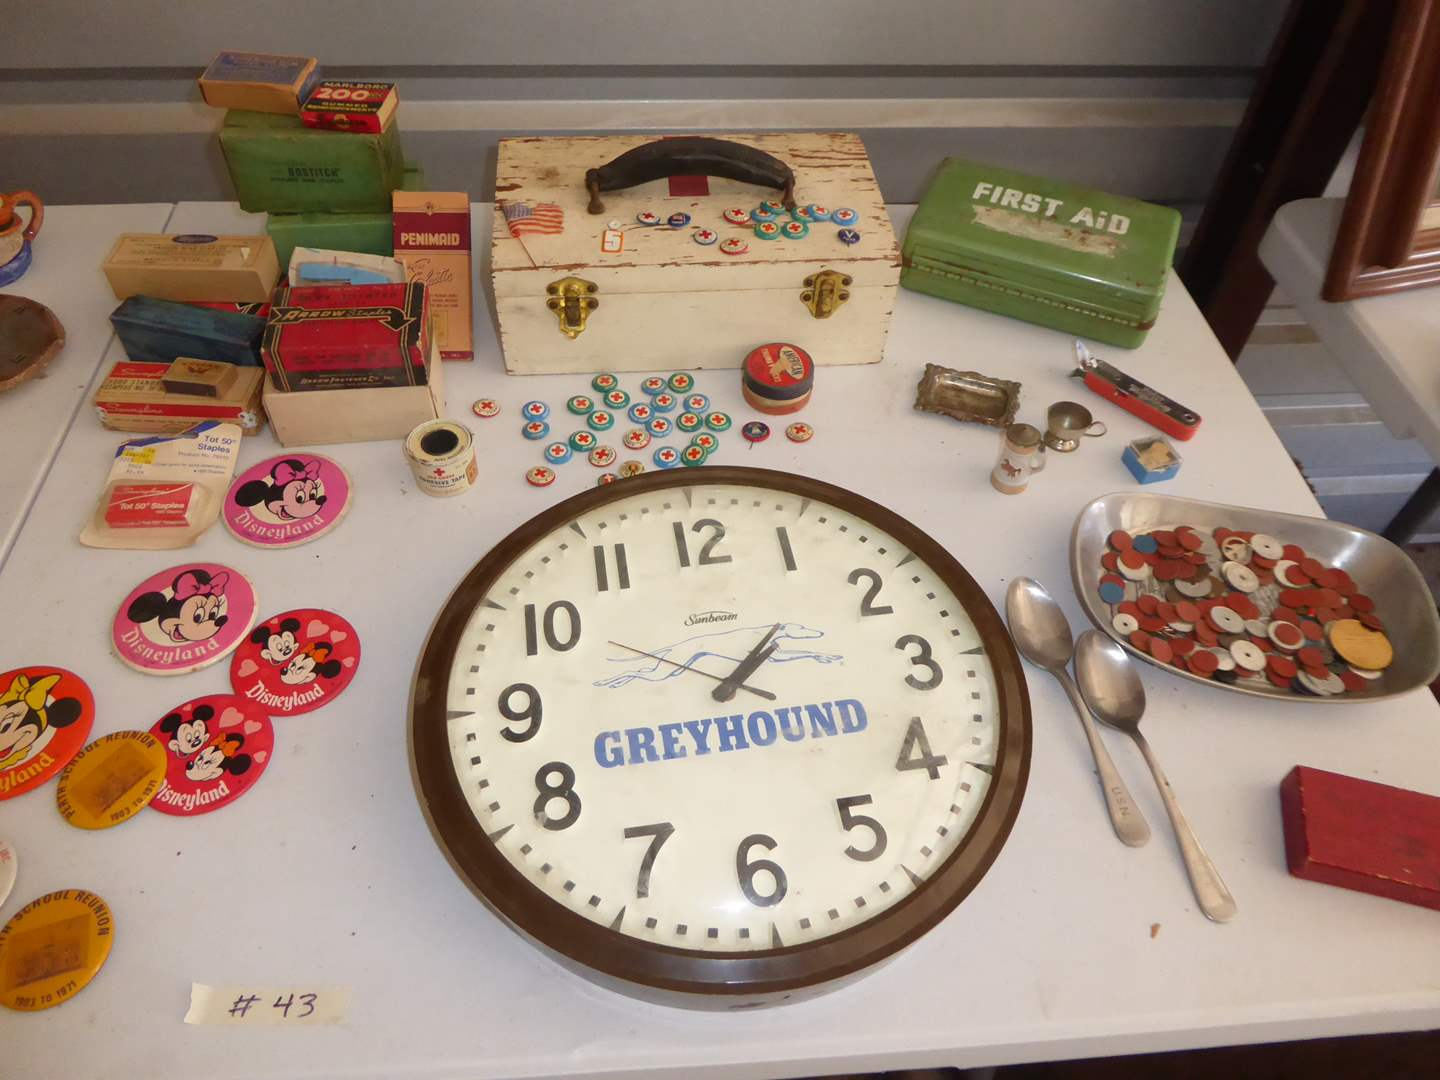 Lot # 43 - GreyHound Clock, Ration Tokens, Disneyland Pins & Swimmers Buttons  (main image)